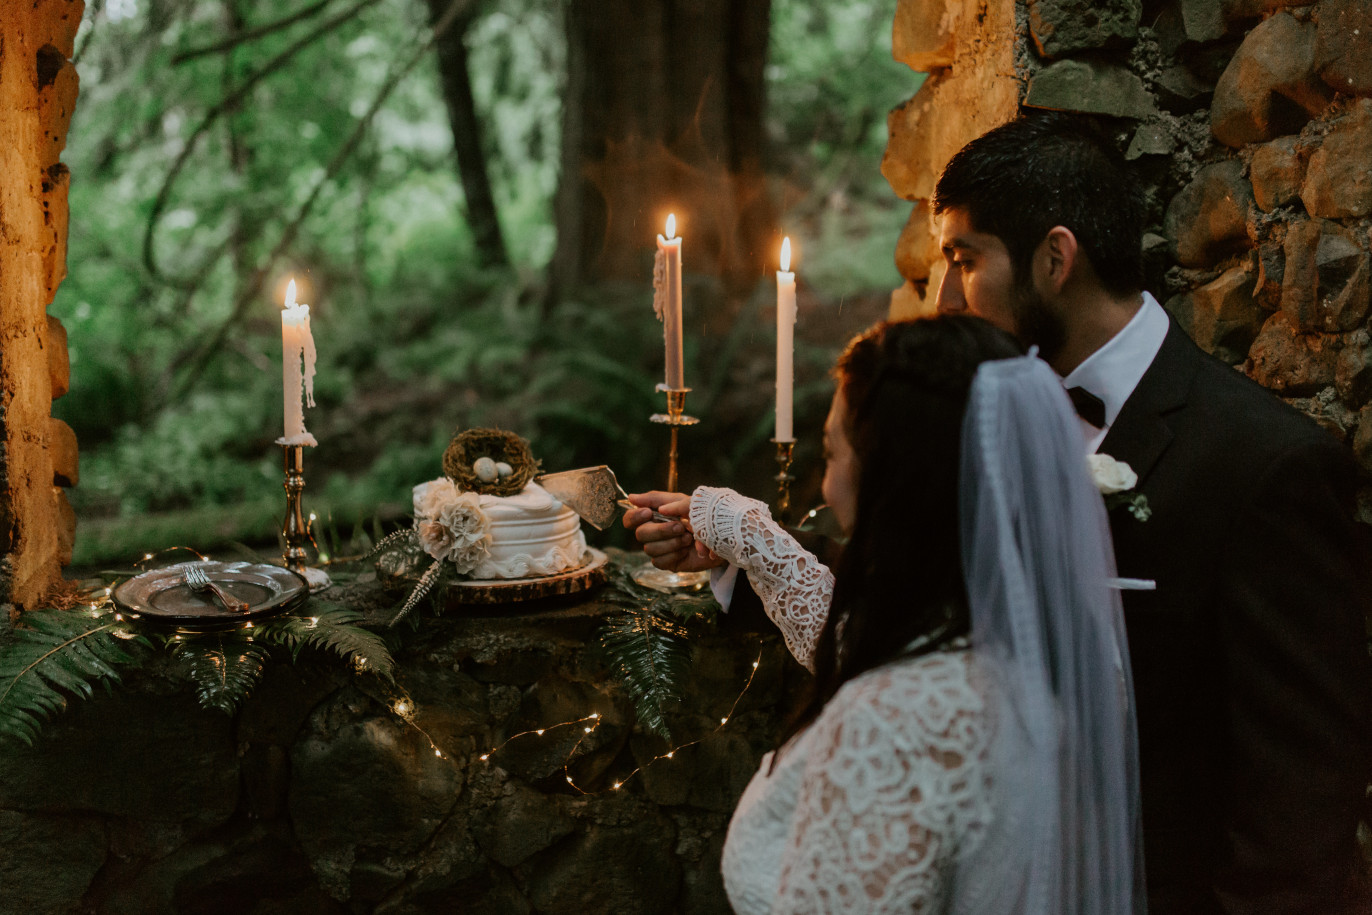 Sarah and Sam cut the wedding cake at Skamania House, Washington. Elopement photography in Portland Oregon by Sienna Plus Josh.